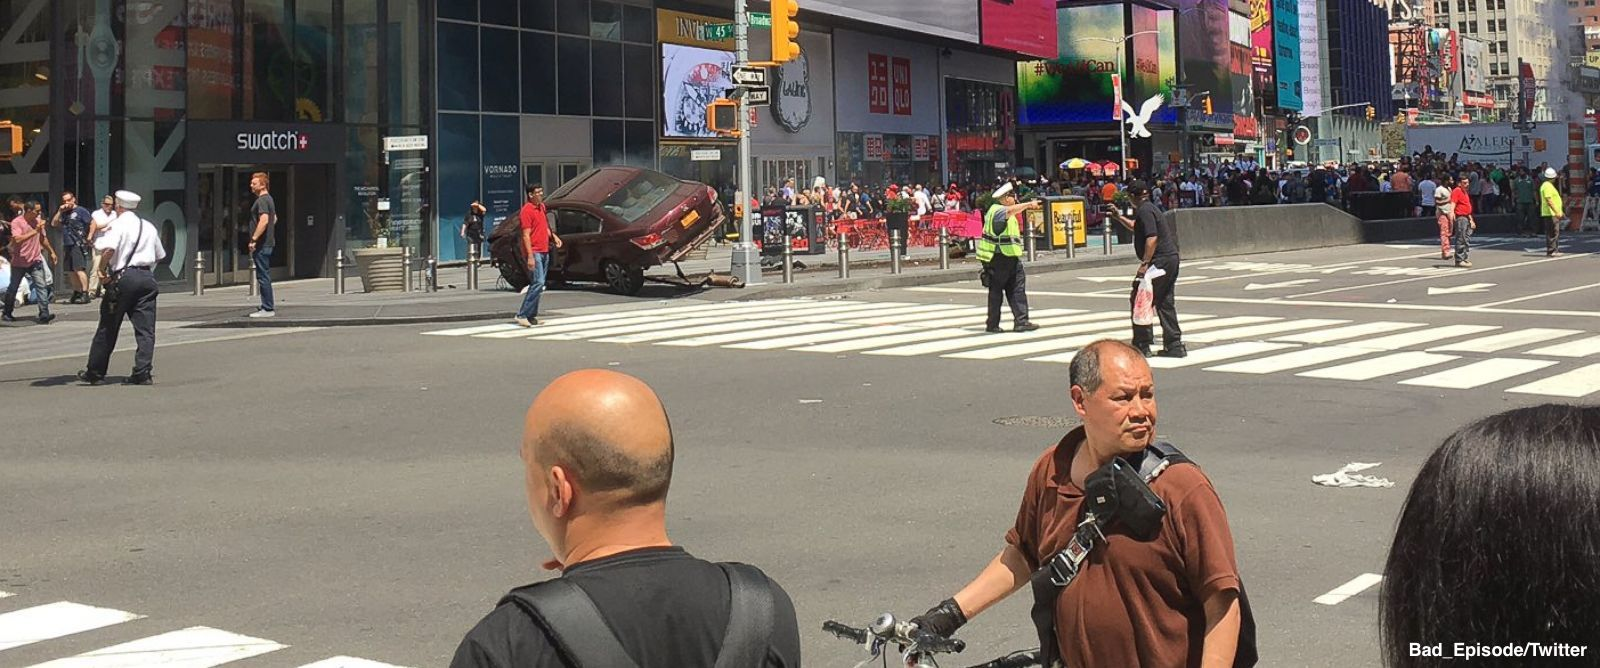 1 dead, at least 19 people injured in Times Square car crash, FDNY says; driver in custody: https://t.co/V3paaHvYJQ https://t.co/bKPOkR3MvW